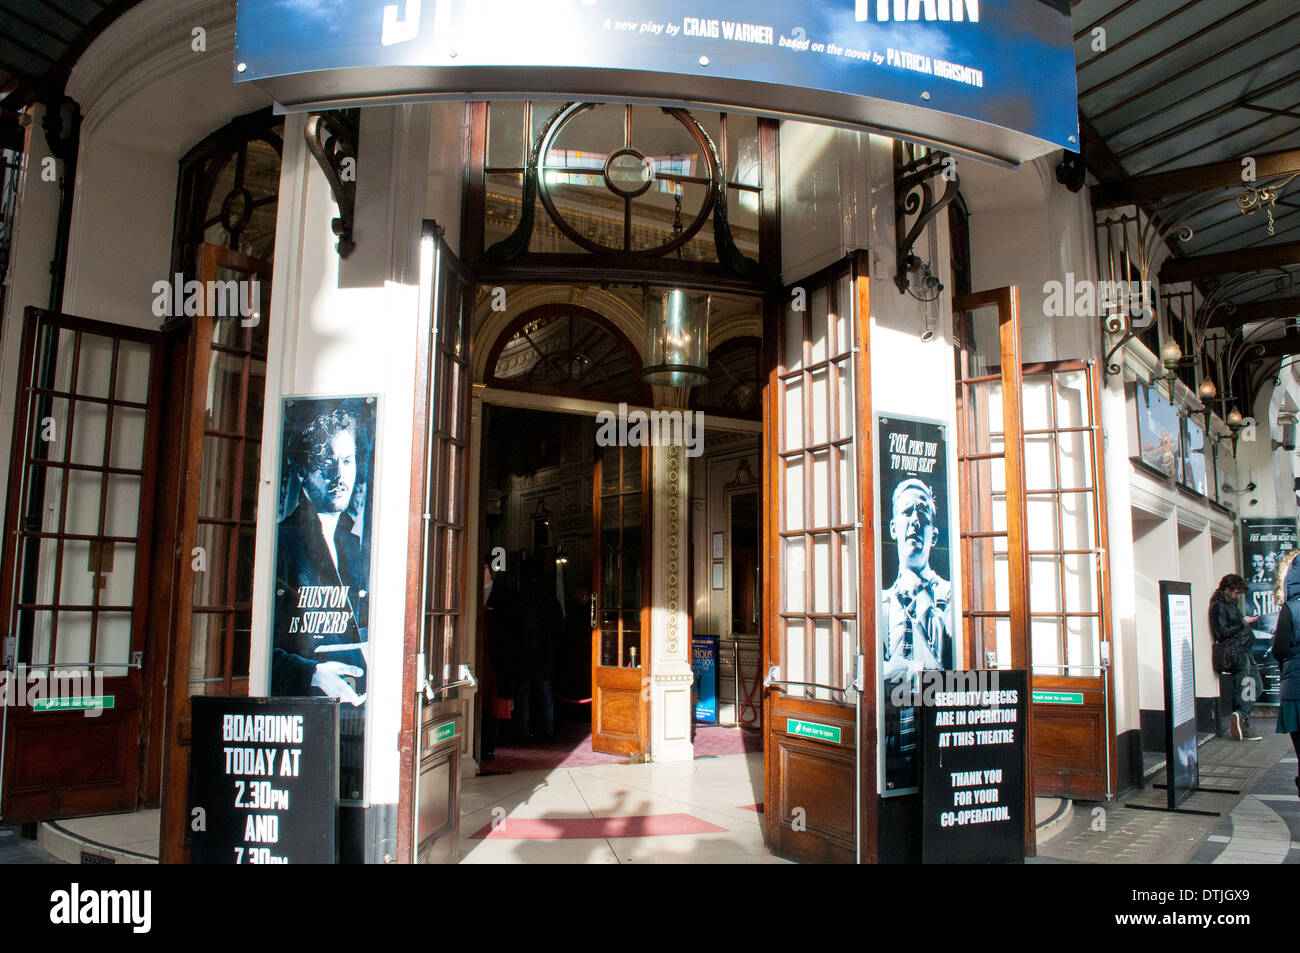 Gielgud theatre in Shaftesbury Avenue, London, WC2, UK - Stock Image